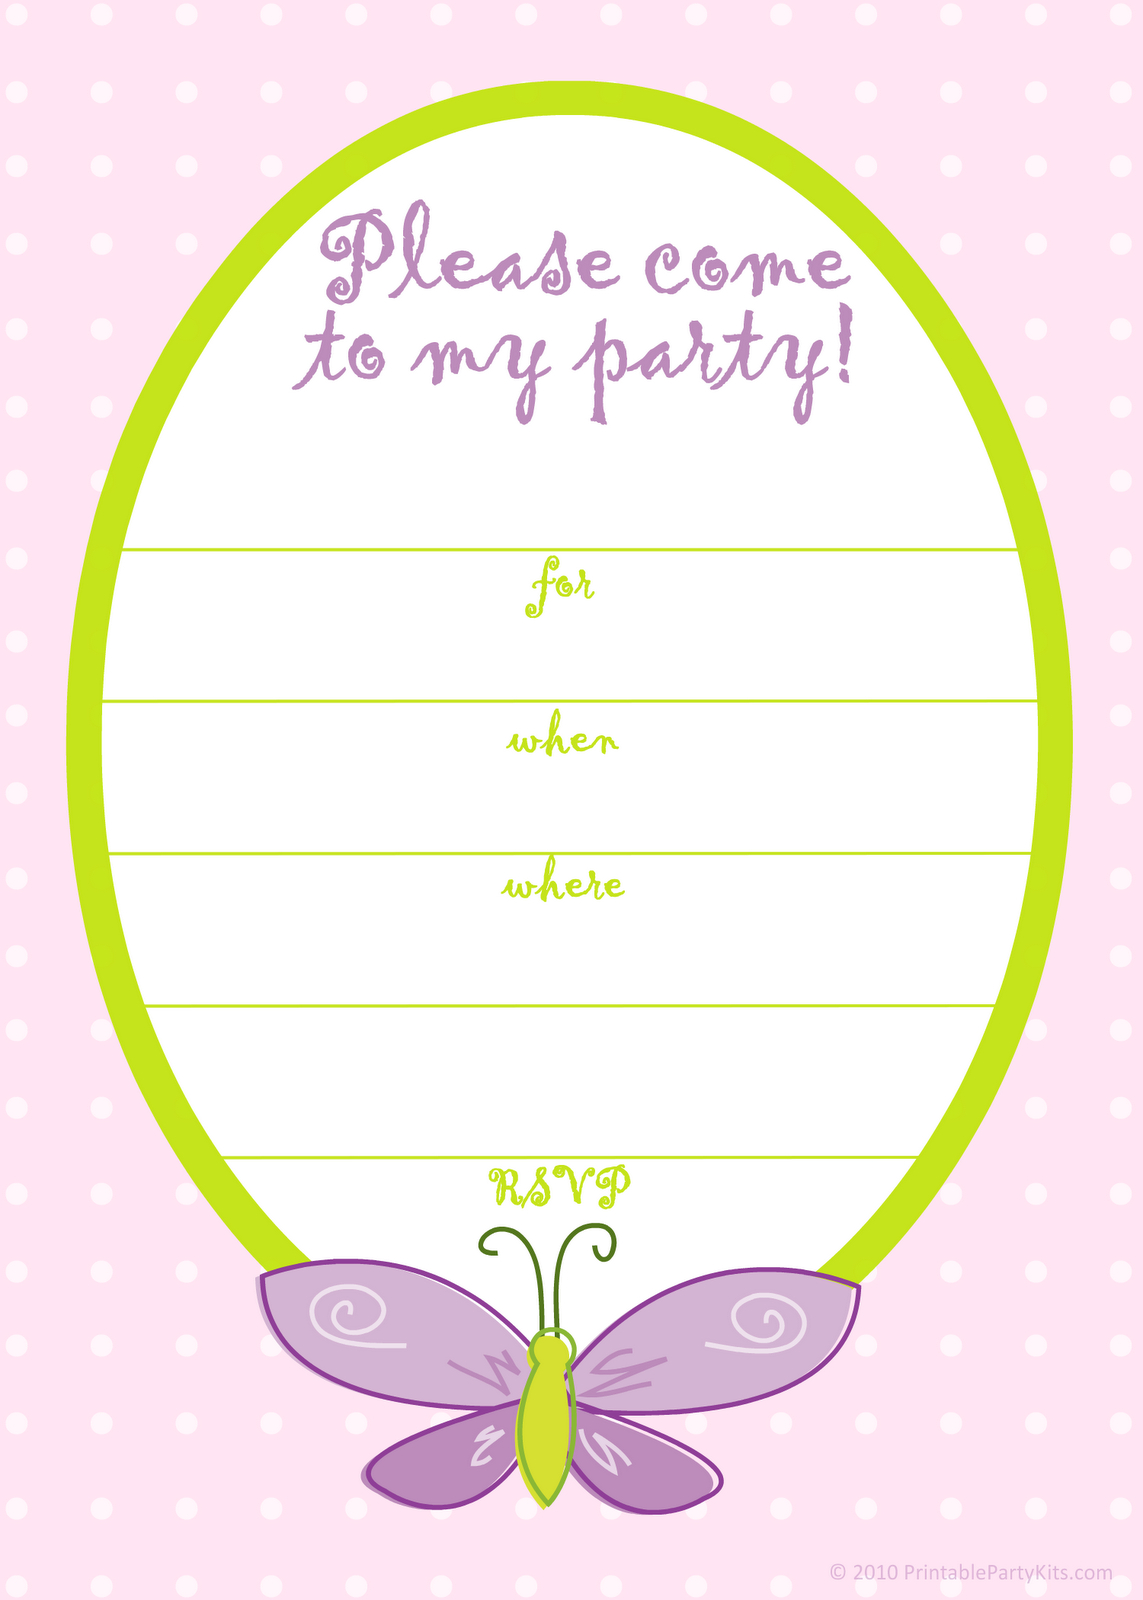 Free Printable Birthday Card Invitation Templates | Invitations In - Customized Birthday Cards Free Printable